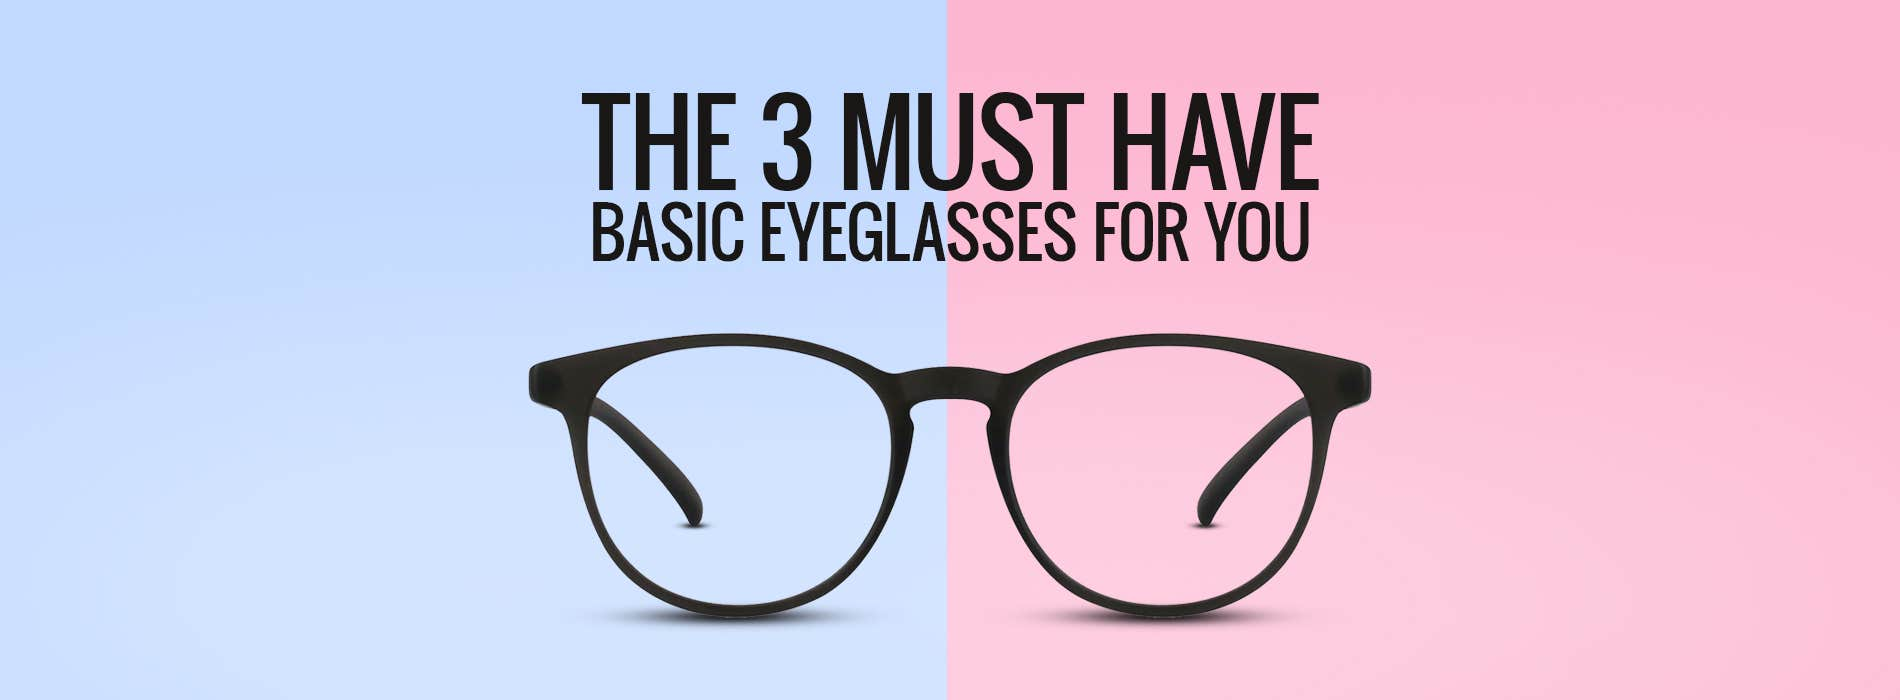 The 3 Must Have Basic Eyeglasses For You